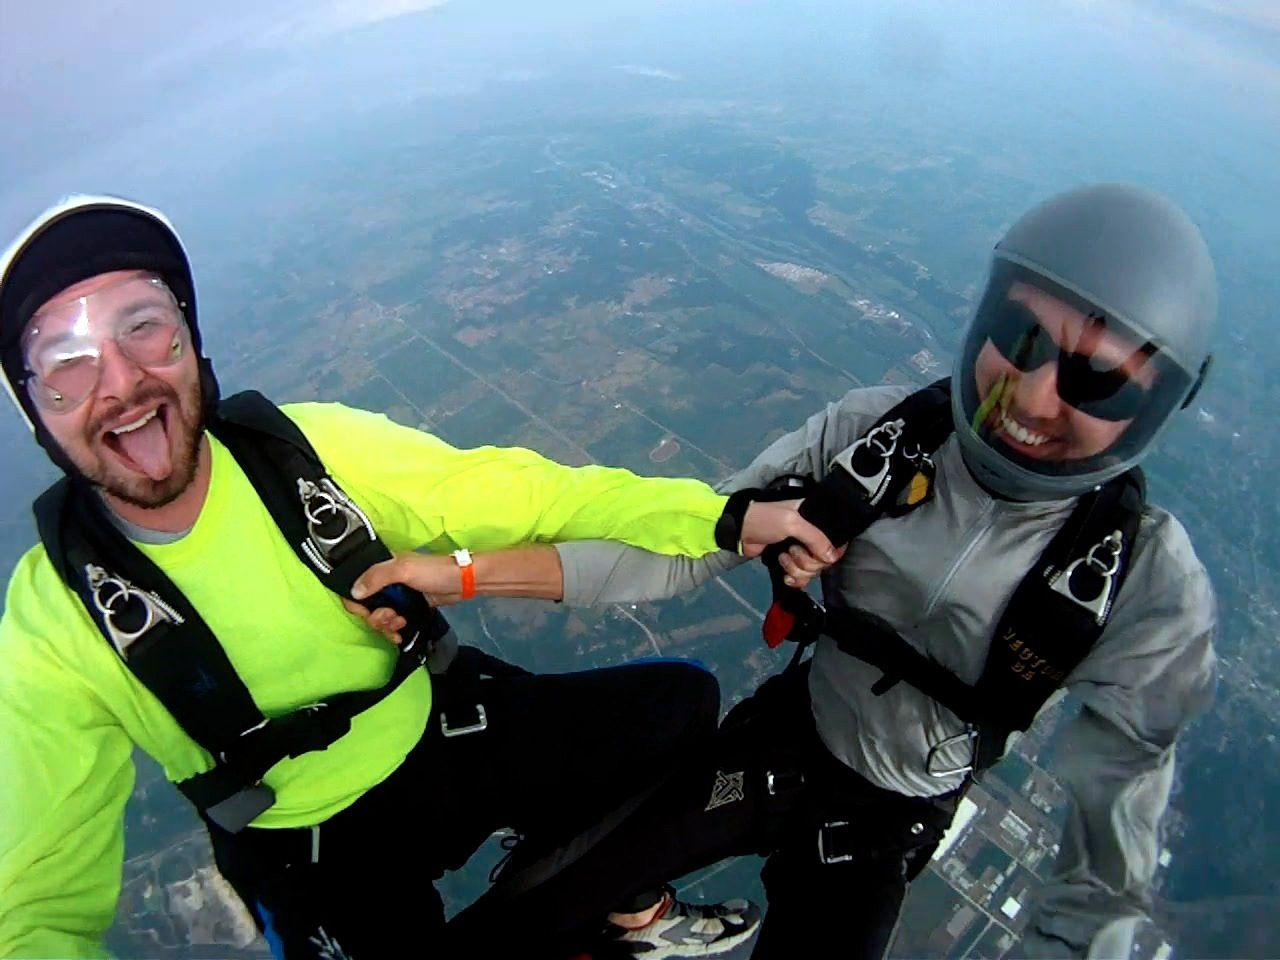 Pin On Skydiving Safety